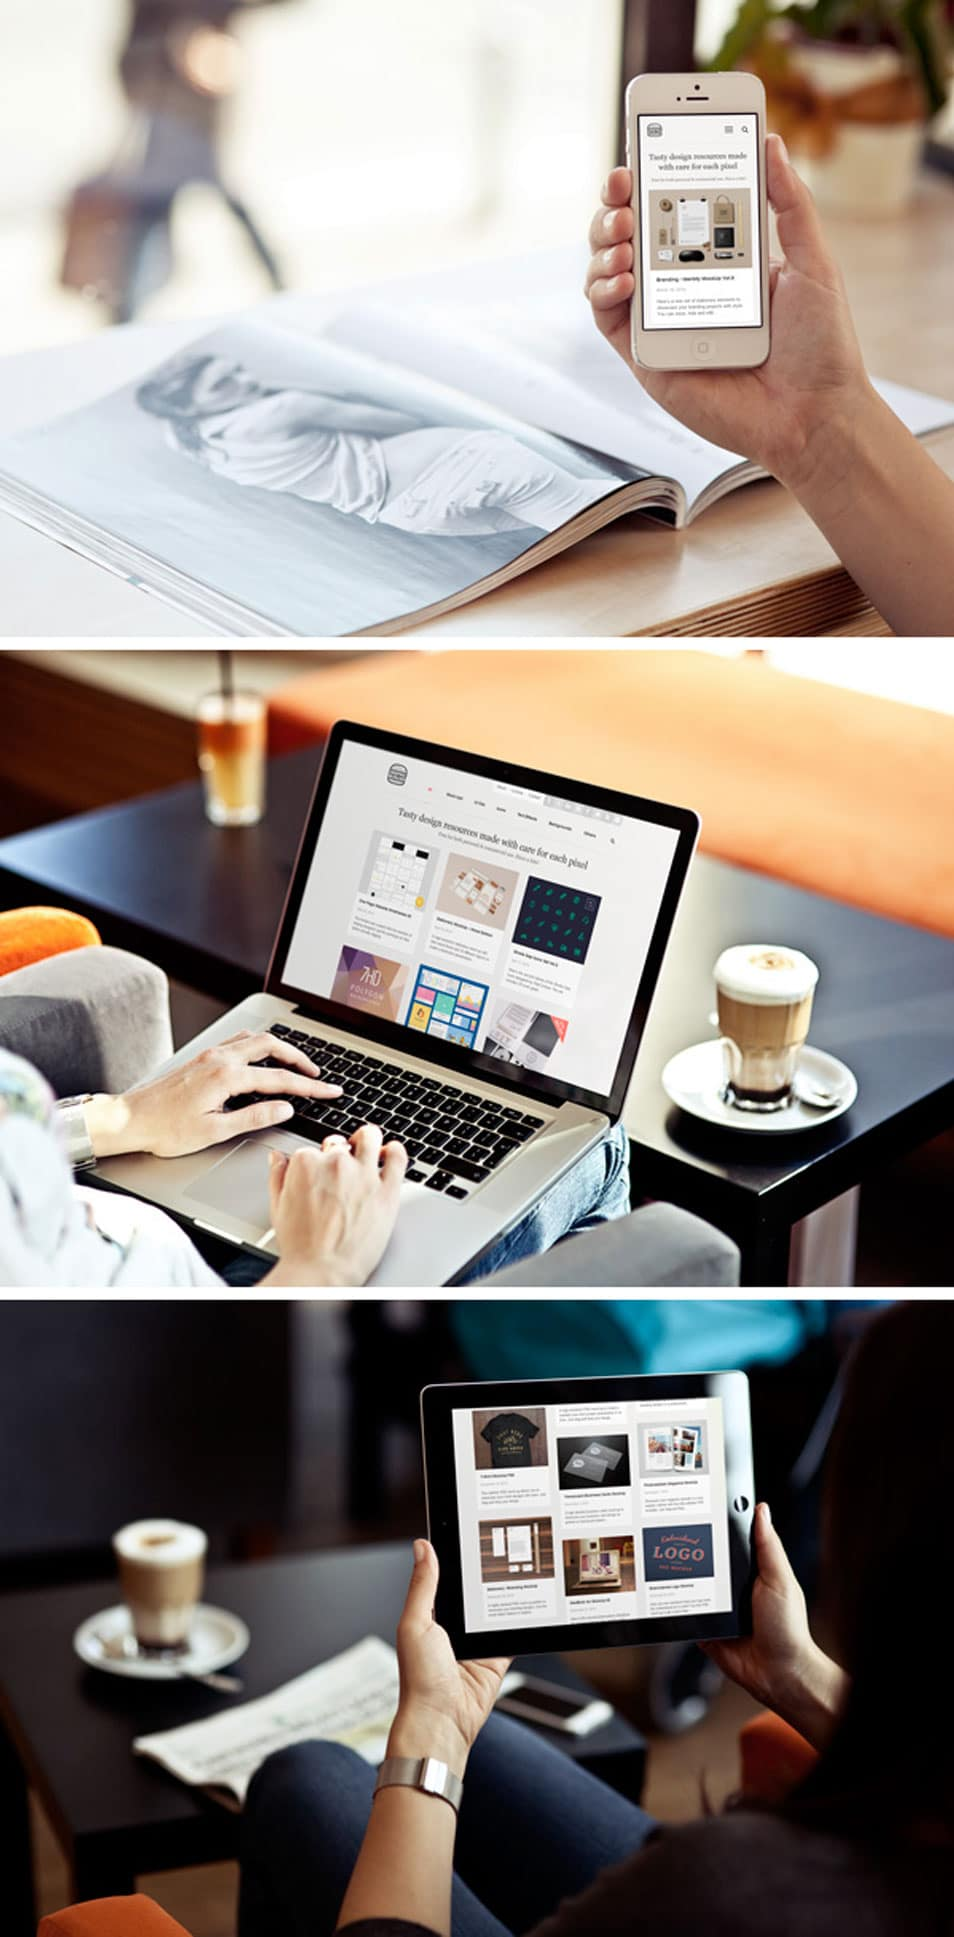 Photo MockUps – iPhone, iPad & MacBook